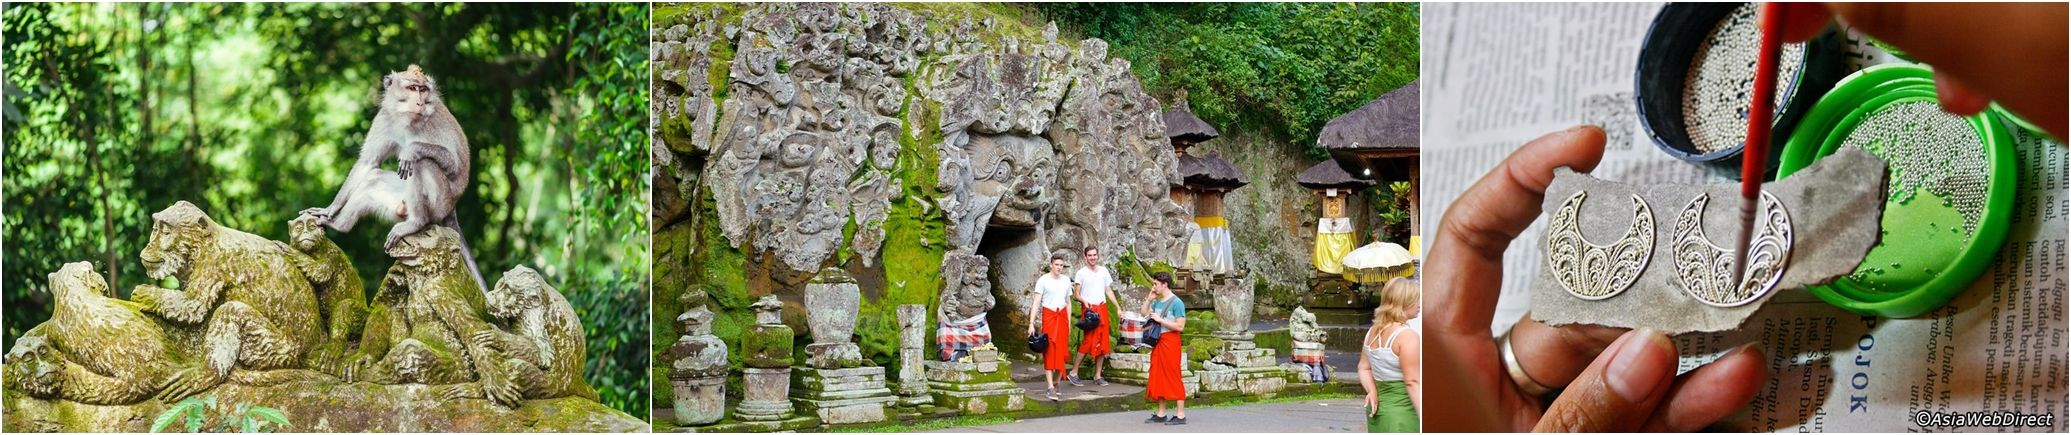 Ubud-Art-Tour